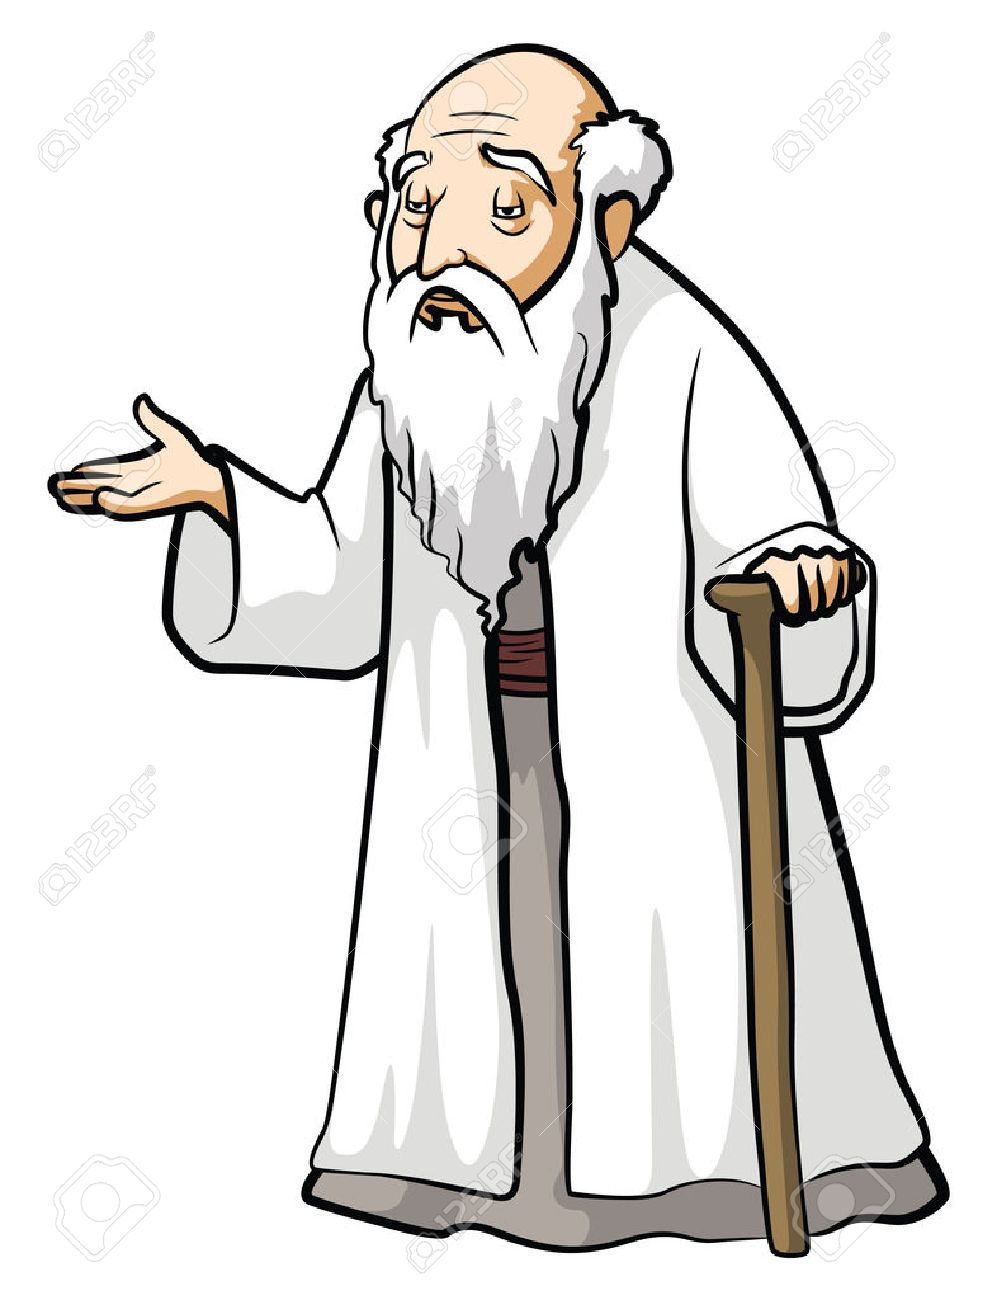 old wise man royalty free cliparts vectors and stock illustration rh 123rf com